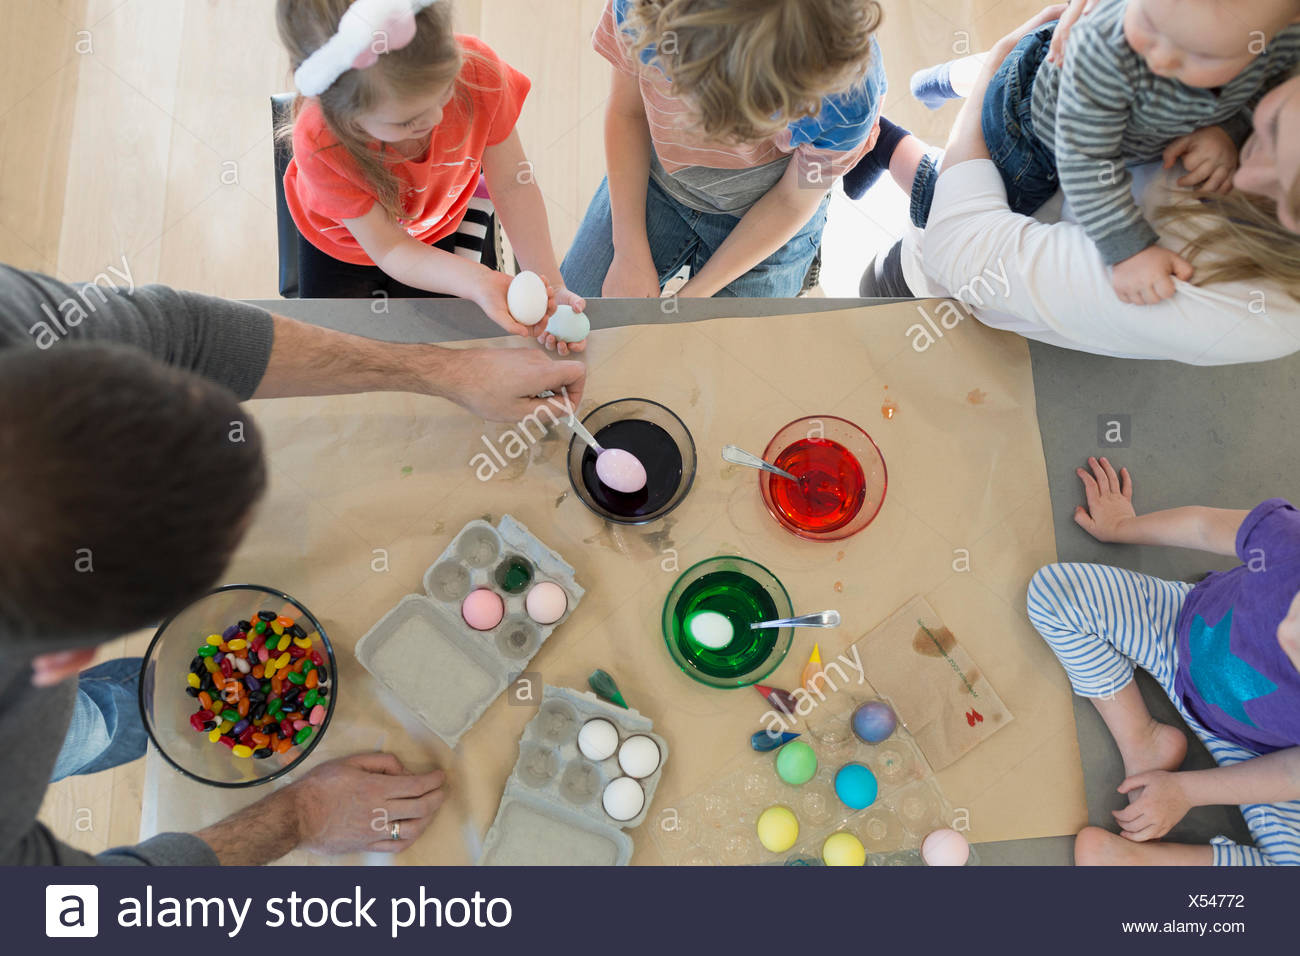 Overhead view family dipping Easter eggs food coloring - Stock Image